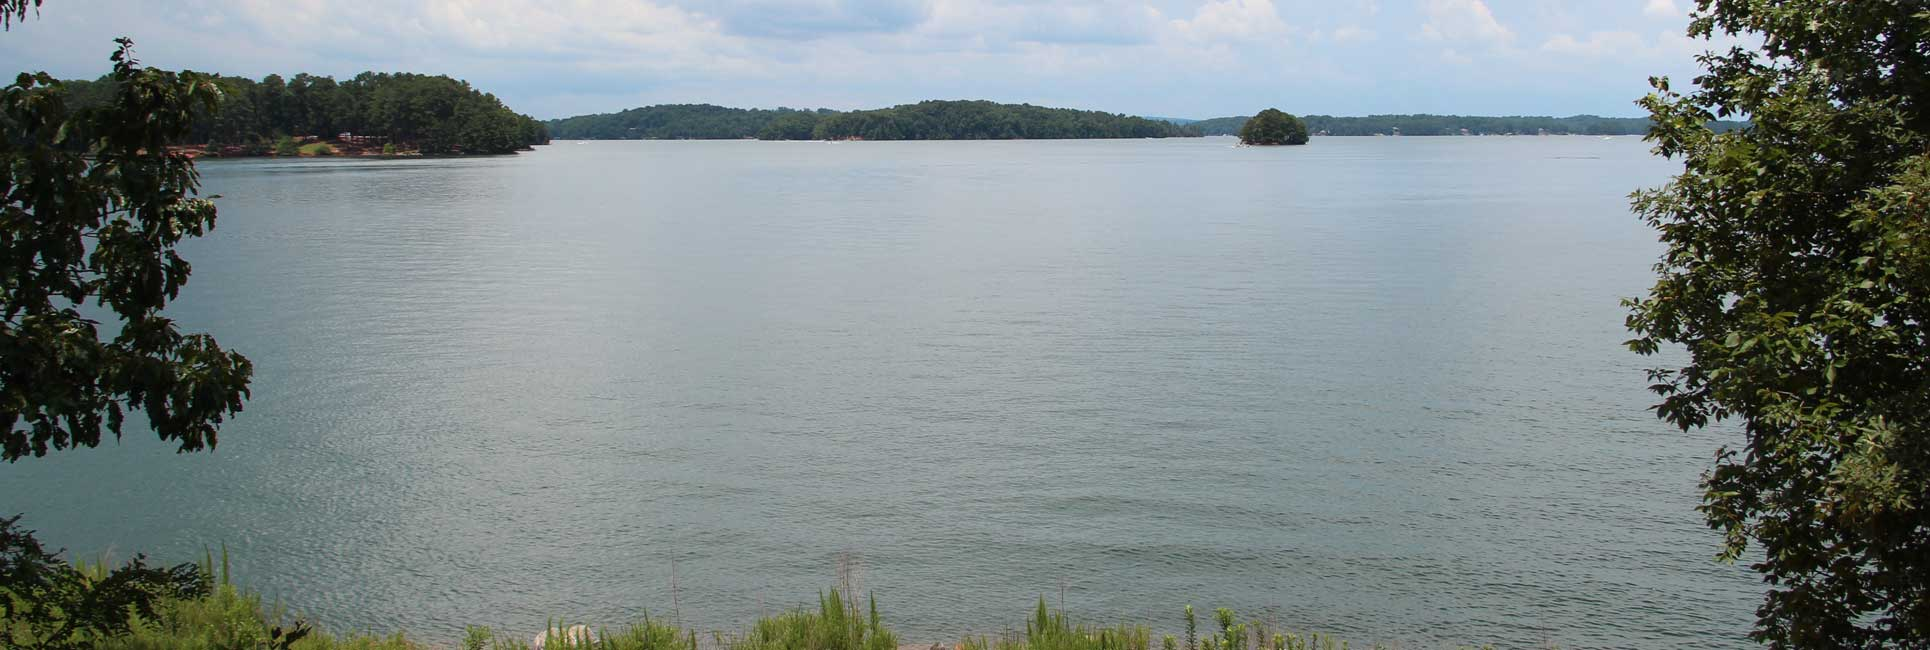 Shoreline with a green trees and an island on Lake Lanier, GA